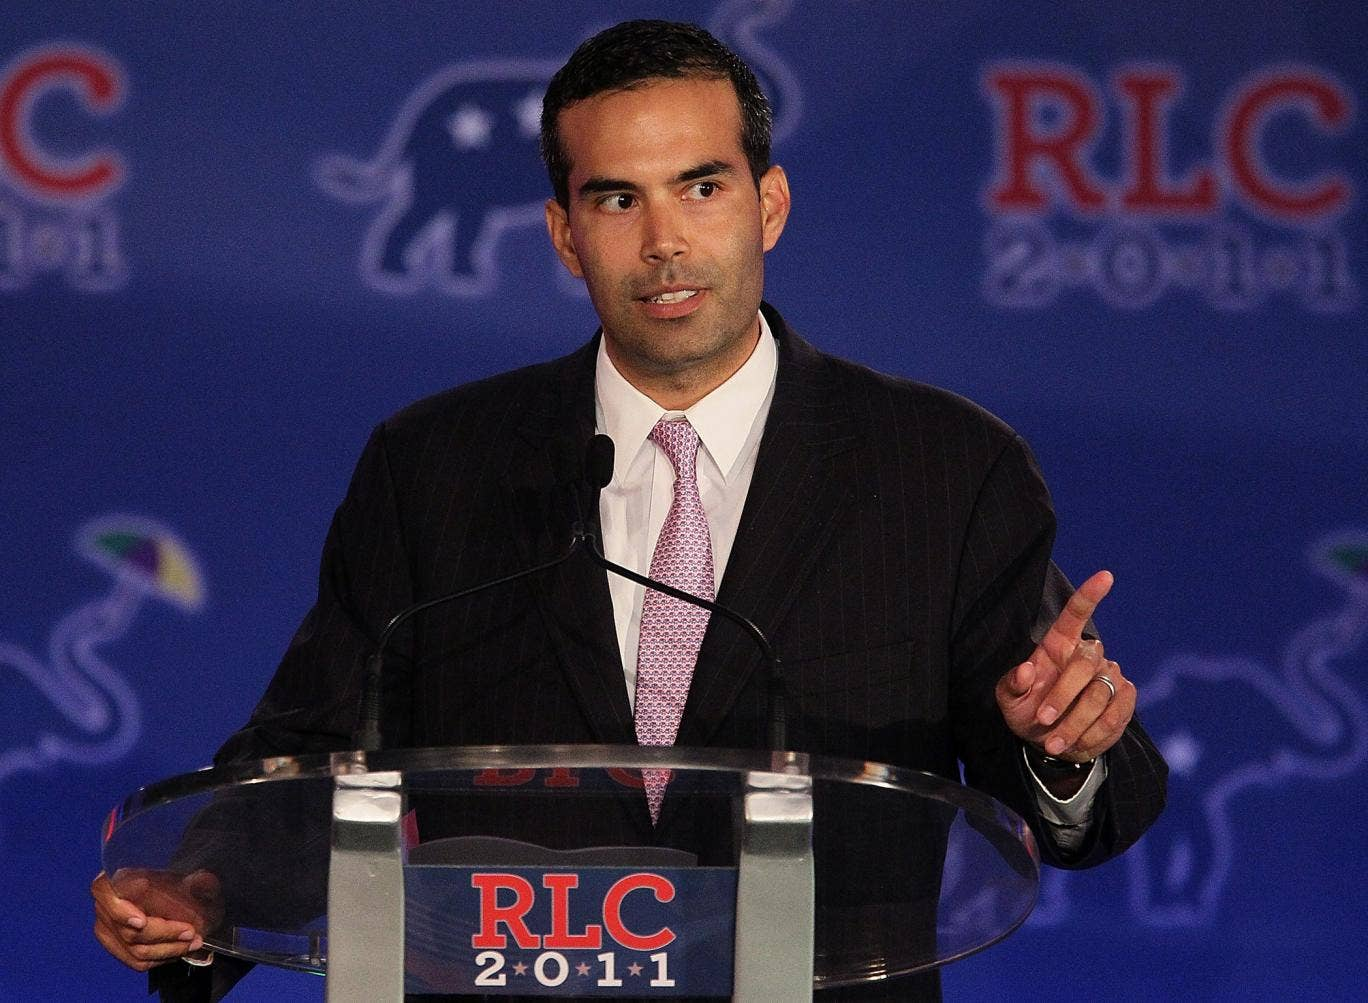 George P. Bush speaks during the 2011 Republican Leadership Conference